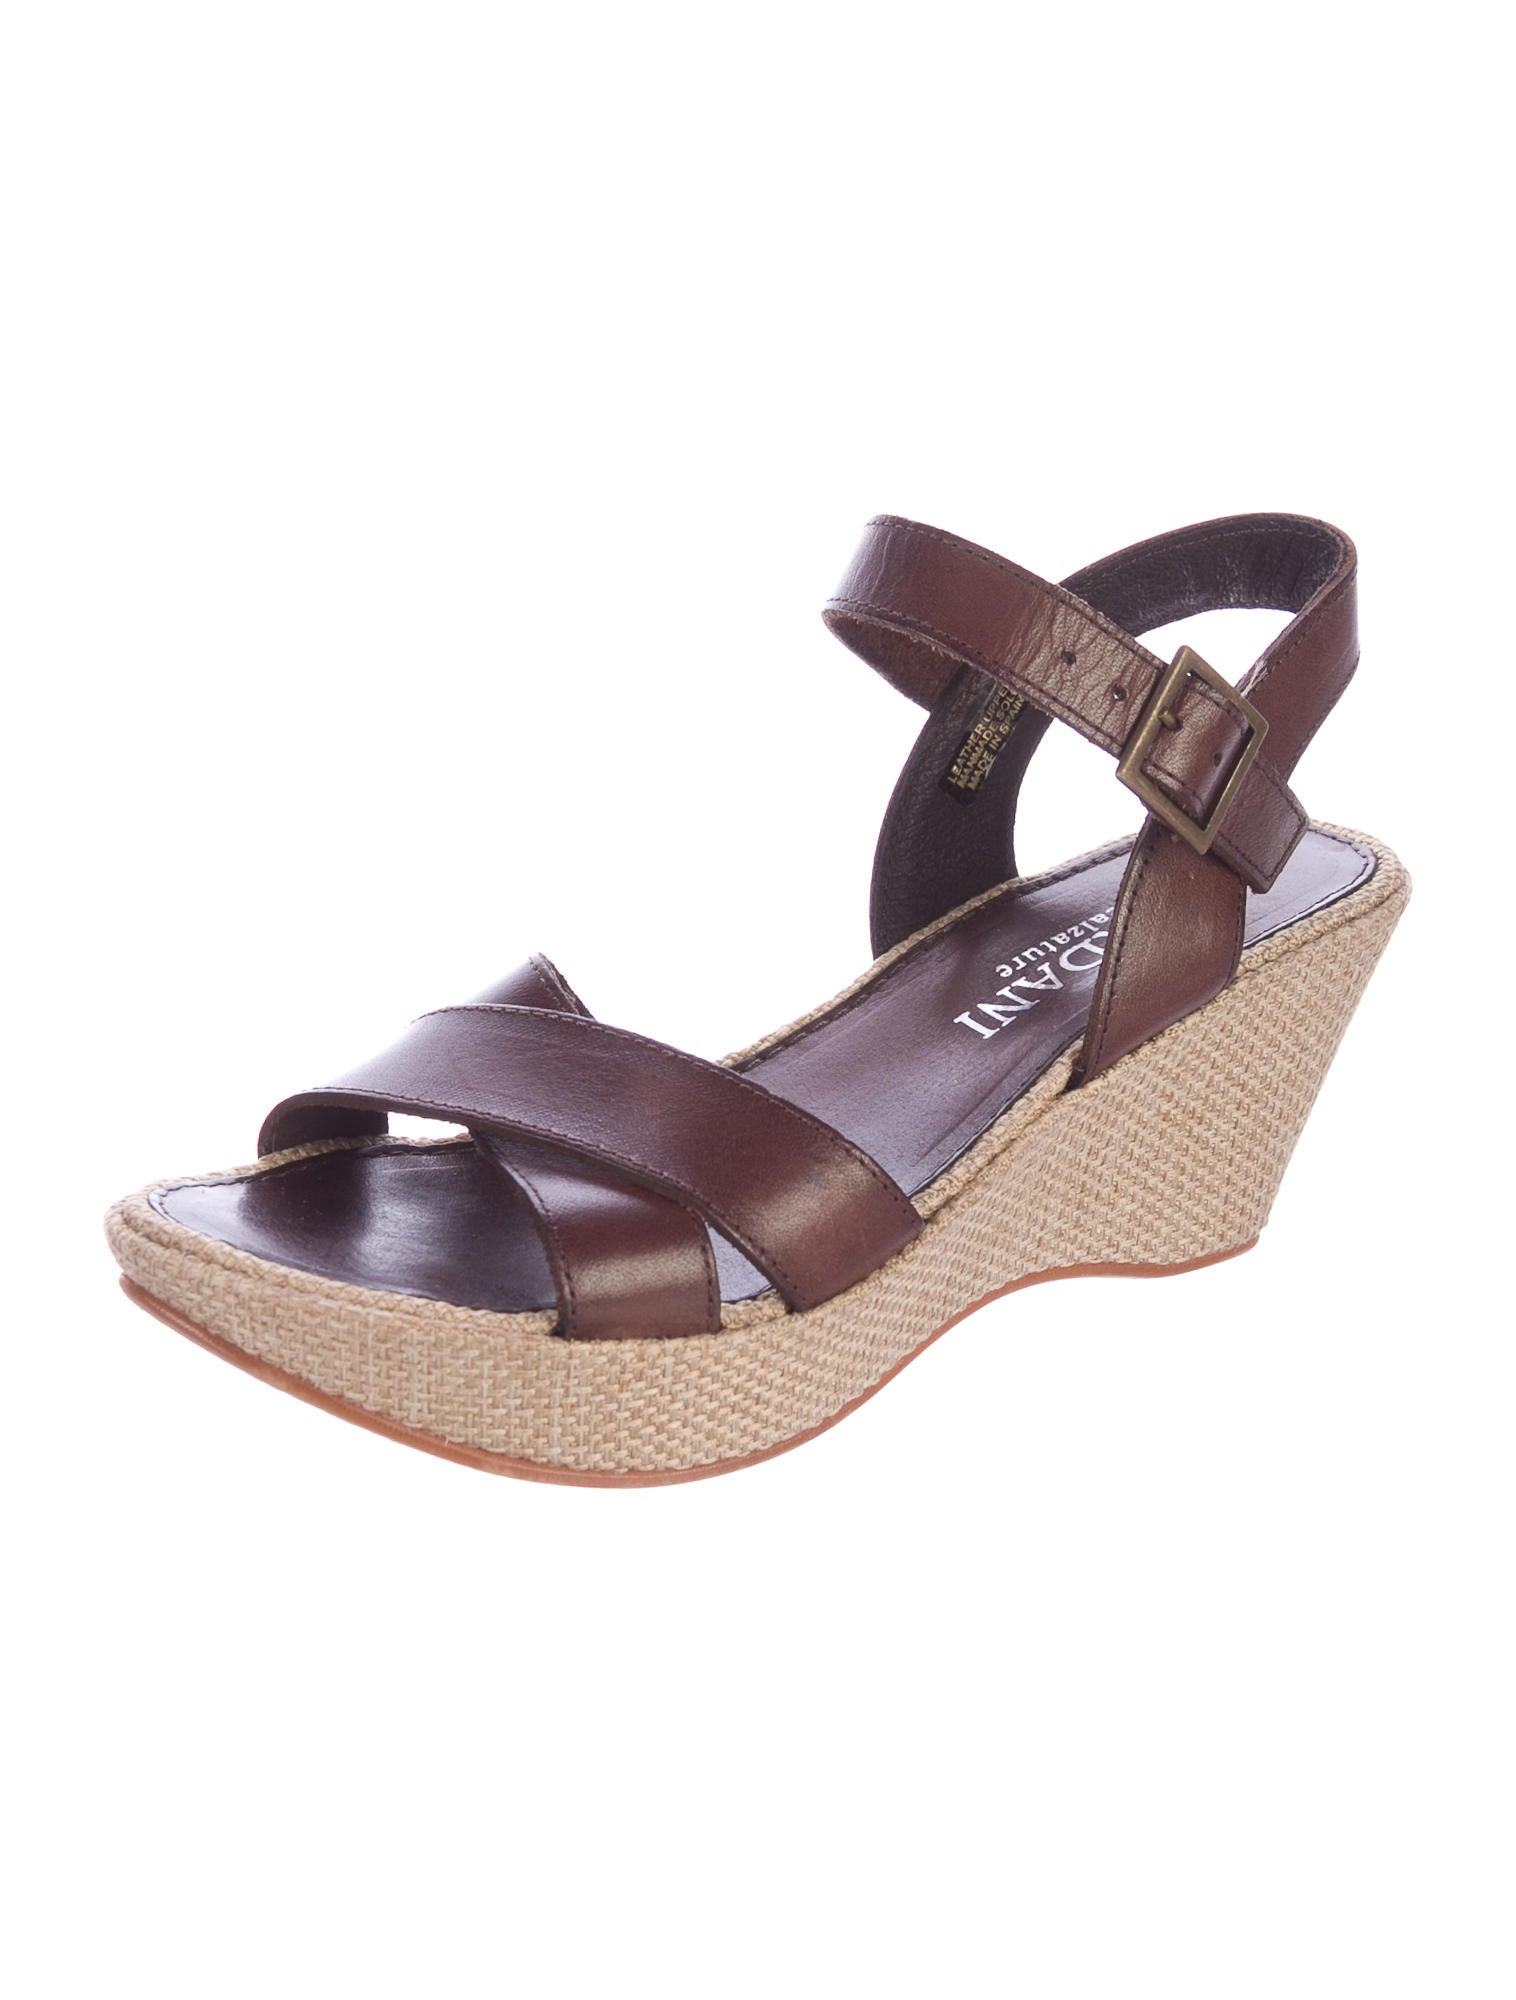 Cordani Leather Crossover Wedge Sandals outlet the cheapest cheap clearance store clearance clearance store buy cheap very cheap cheap price outlet sale mAkrVHn9oh